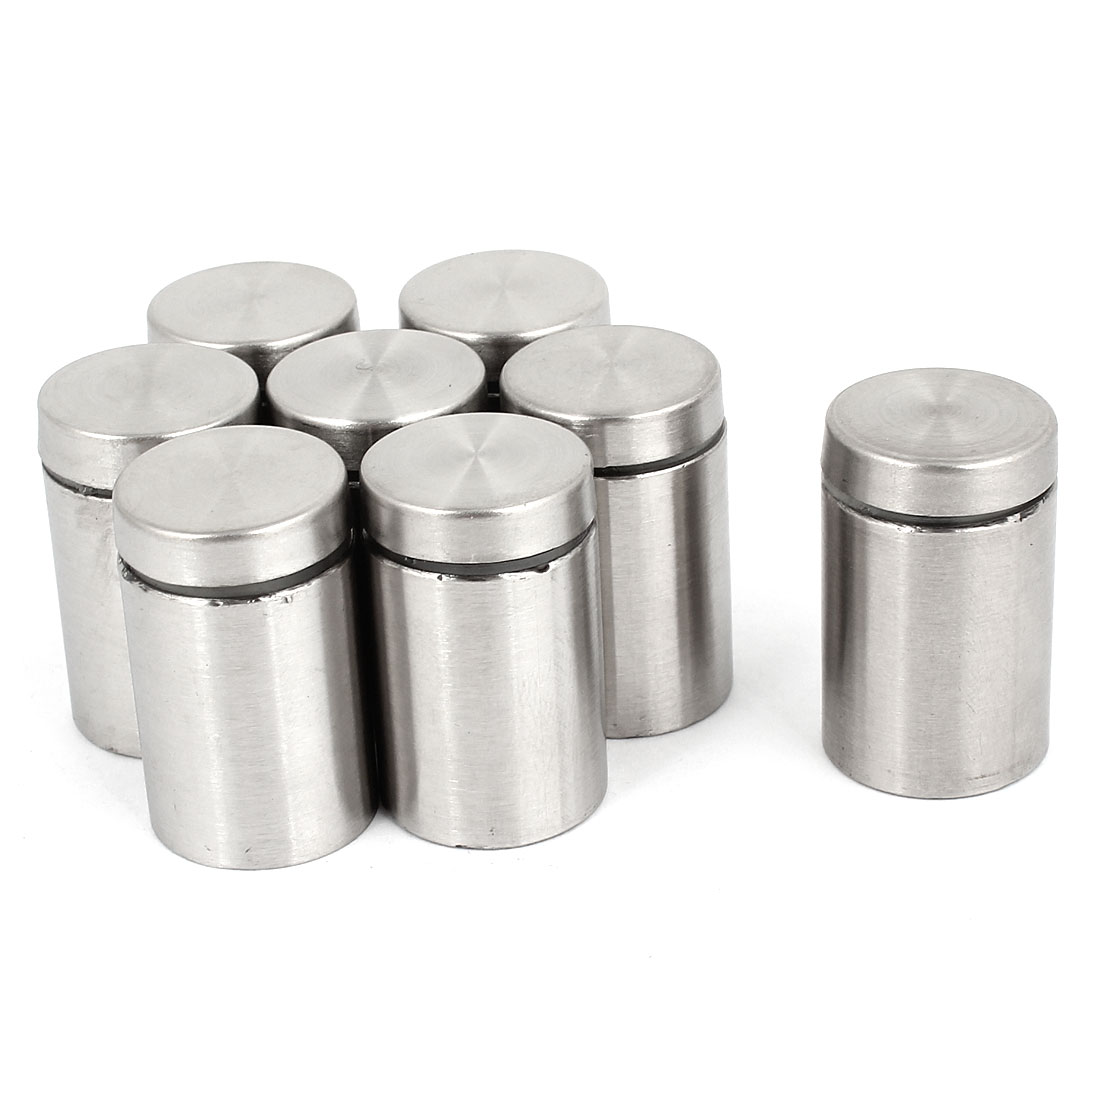 8pcs Silver Tone Stainless Steel Advertising Nail Class Standoff 19mm x 30mm